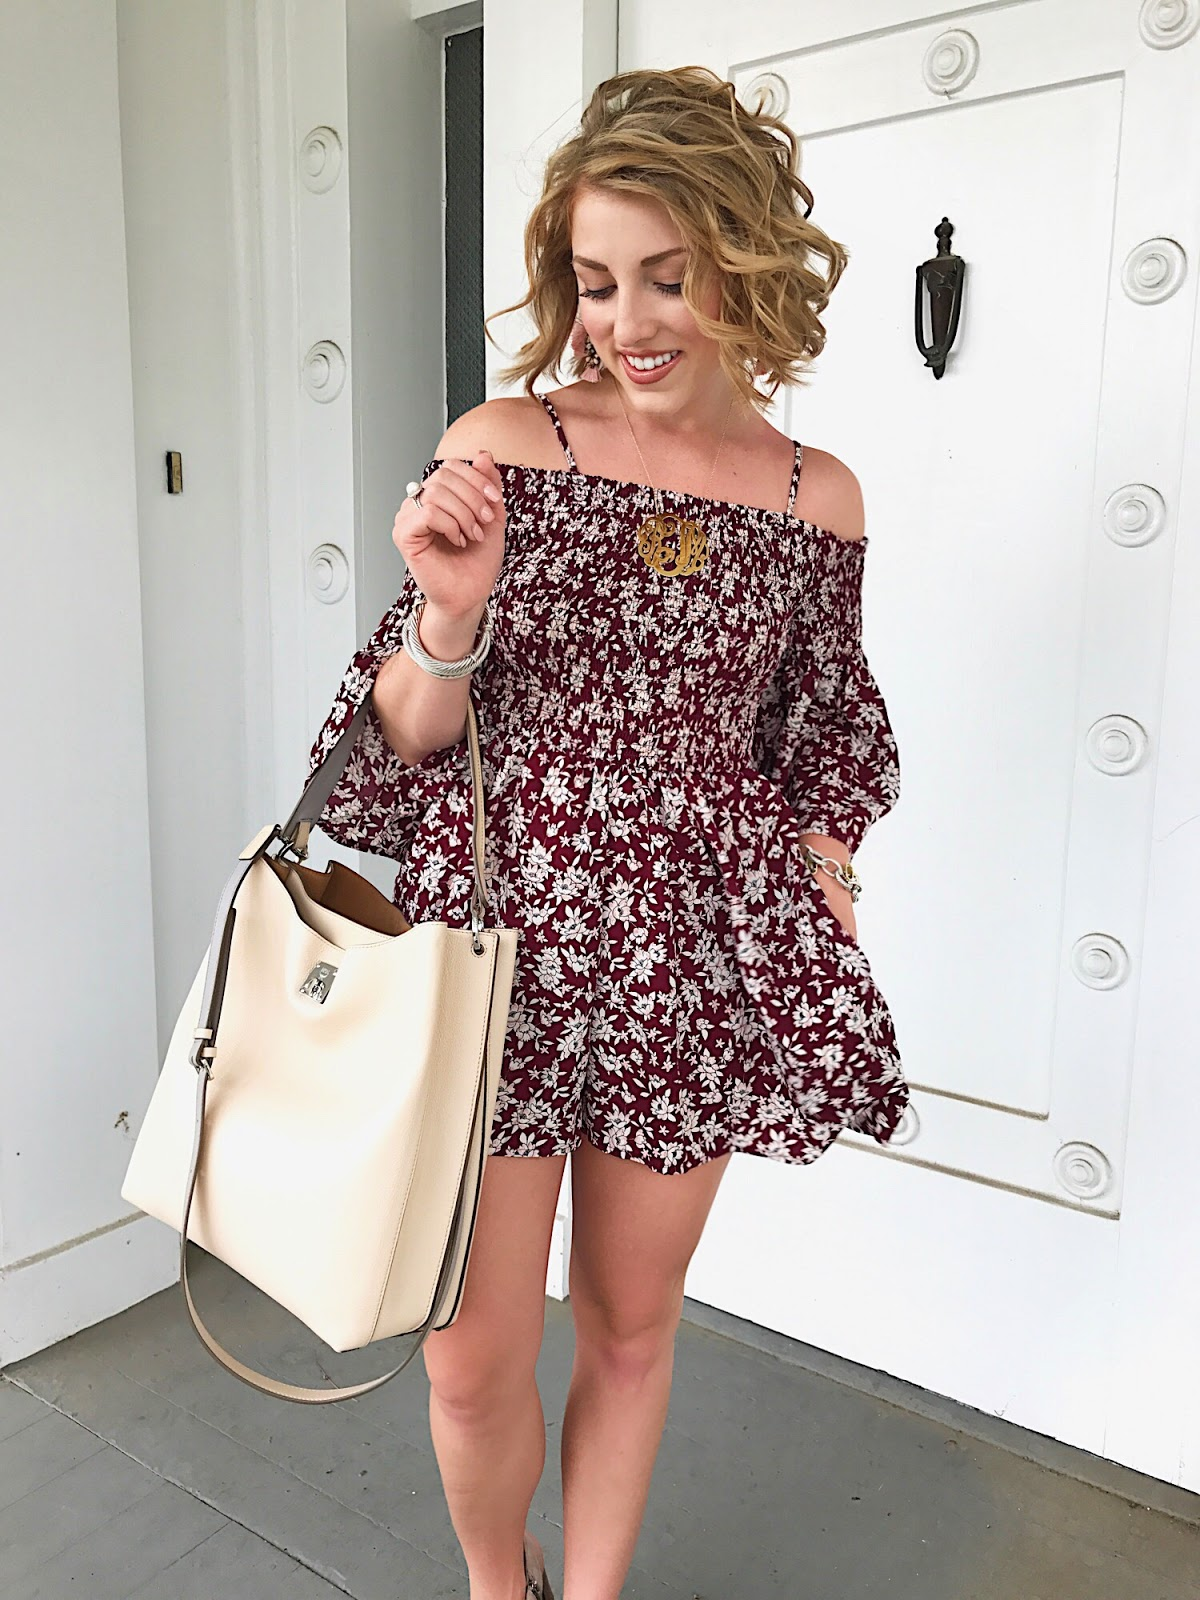 Transitional Romper - Click through to see more on Something Delightful Blog.